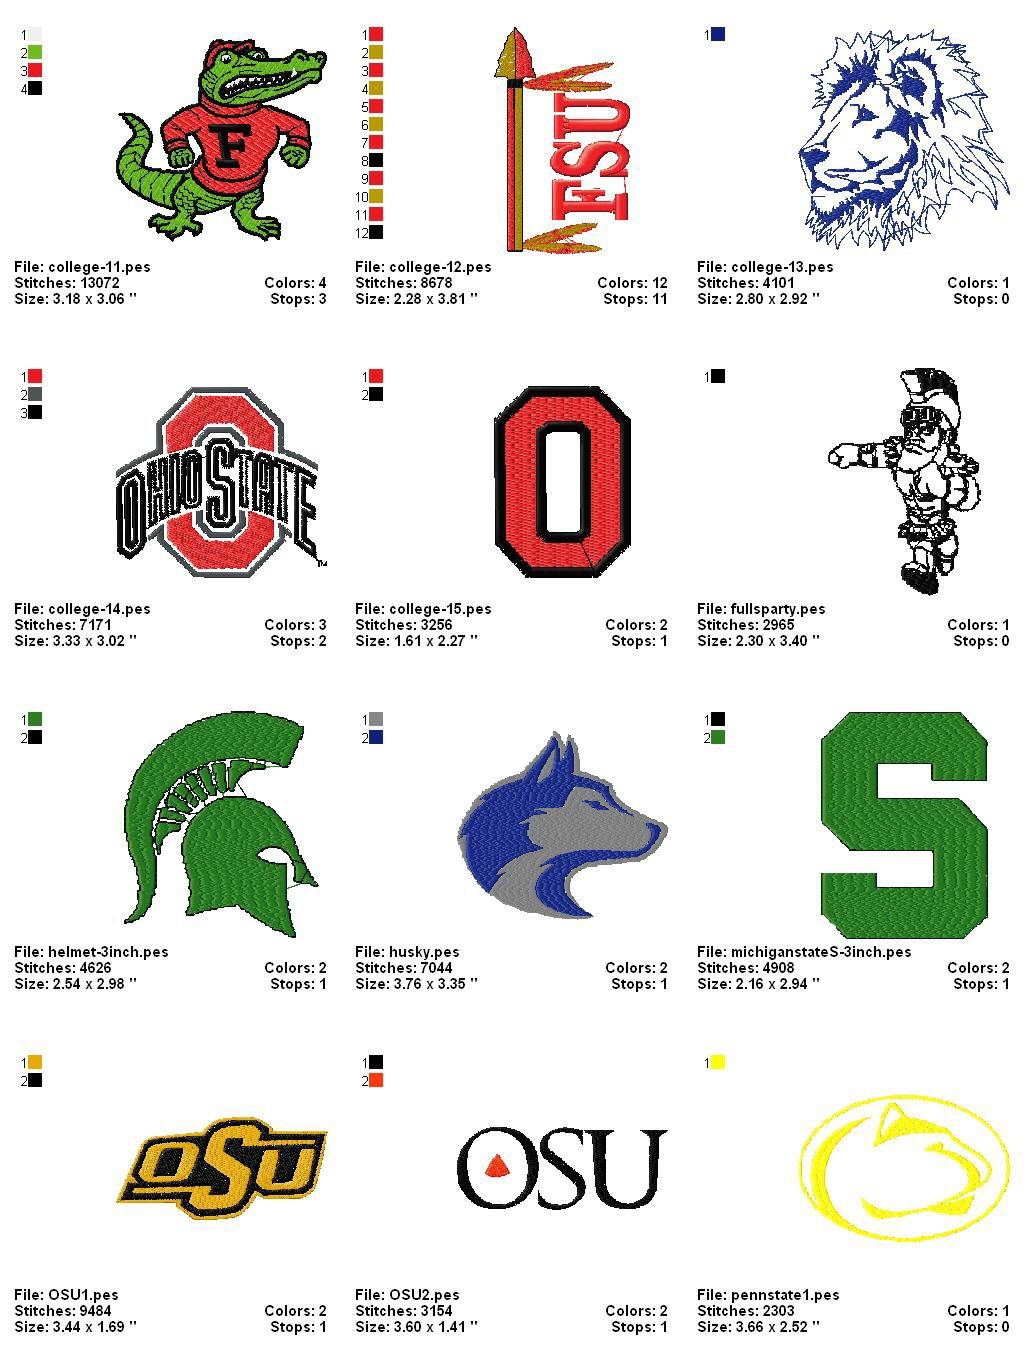 College (collegiate) Embroidery Designs Logos